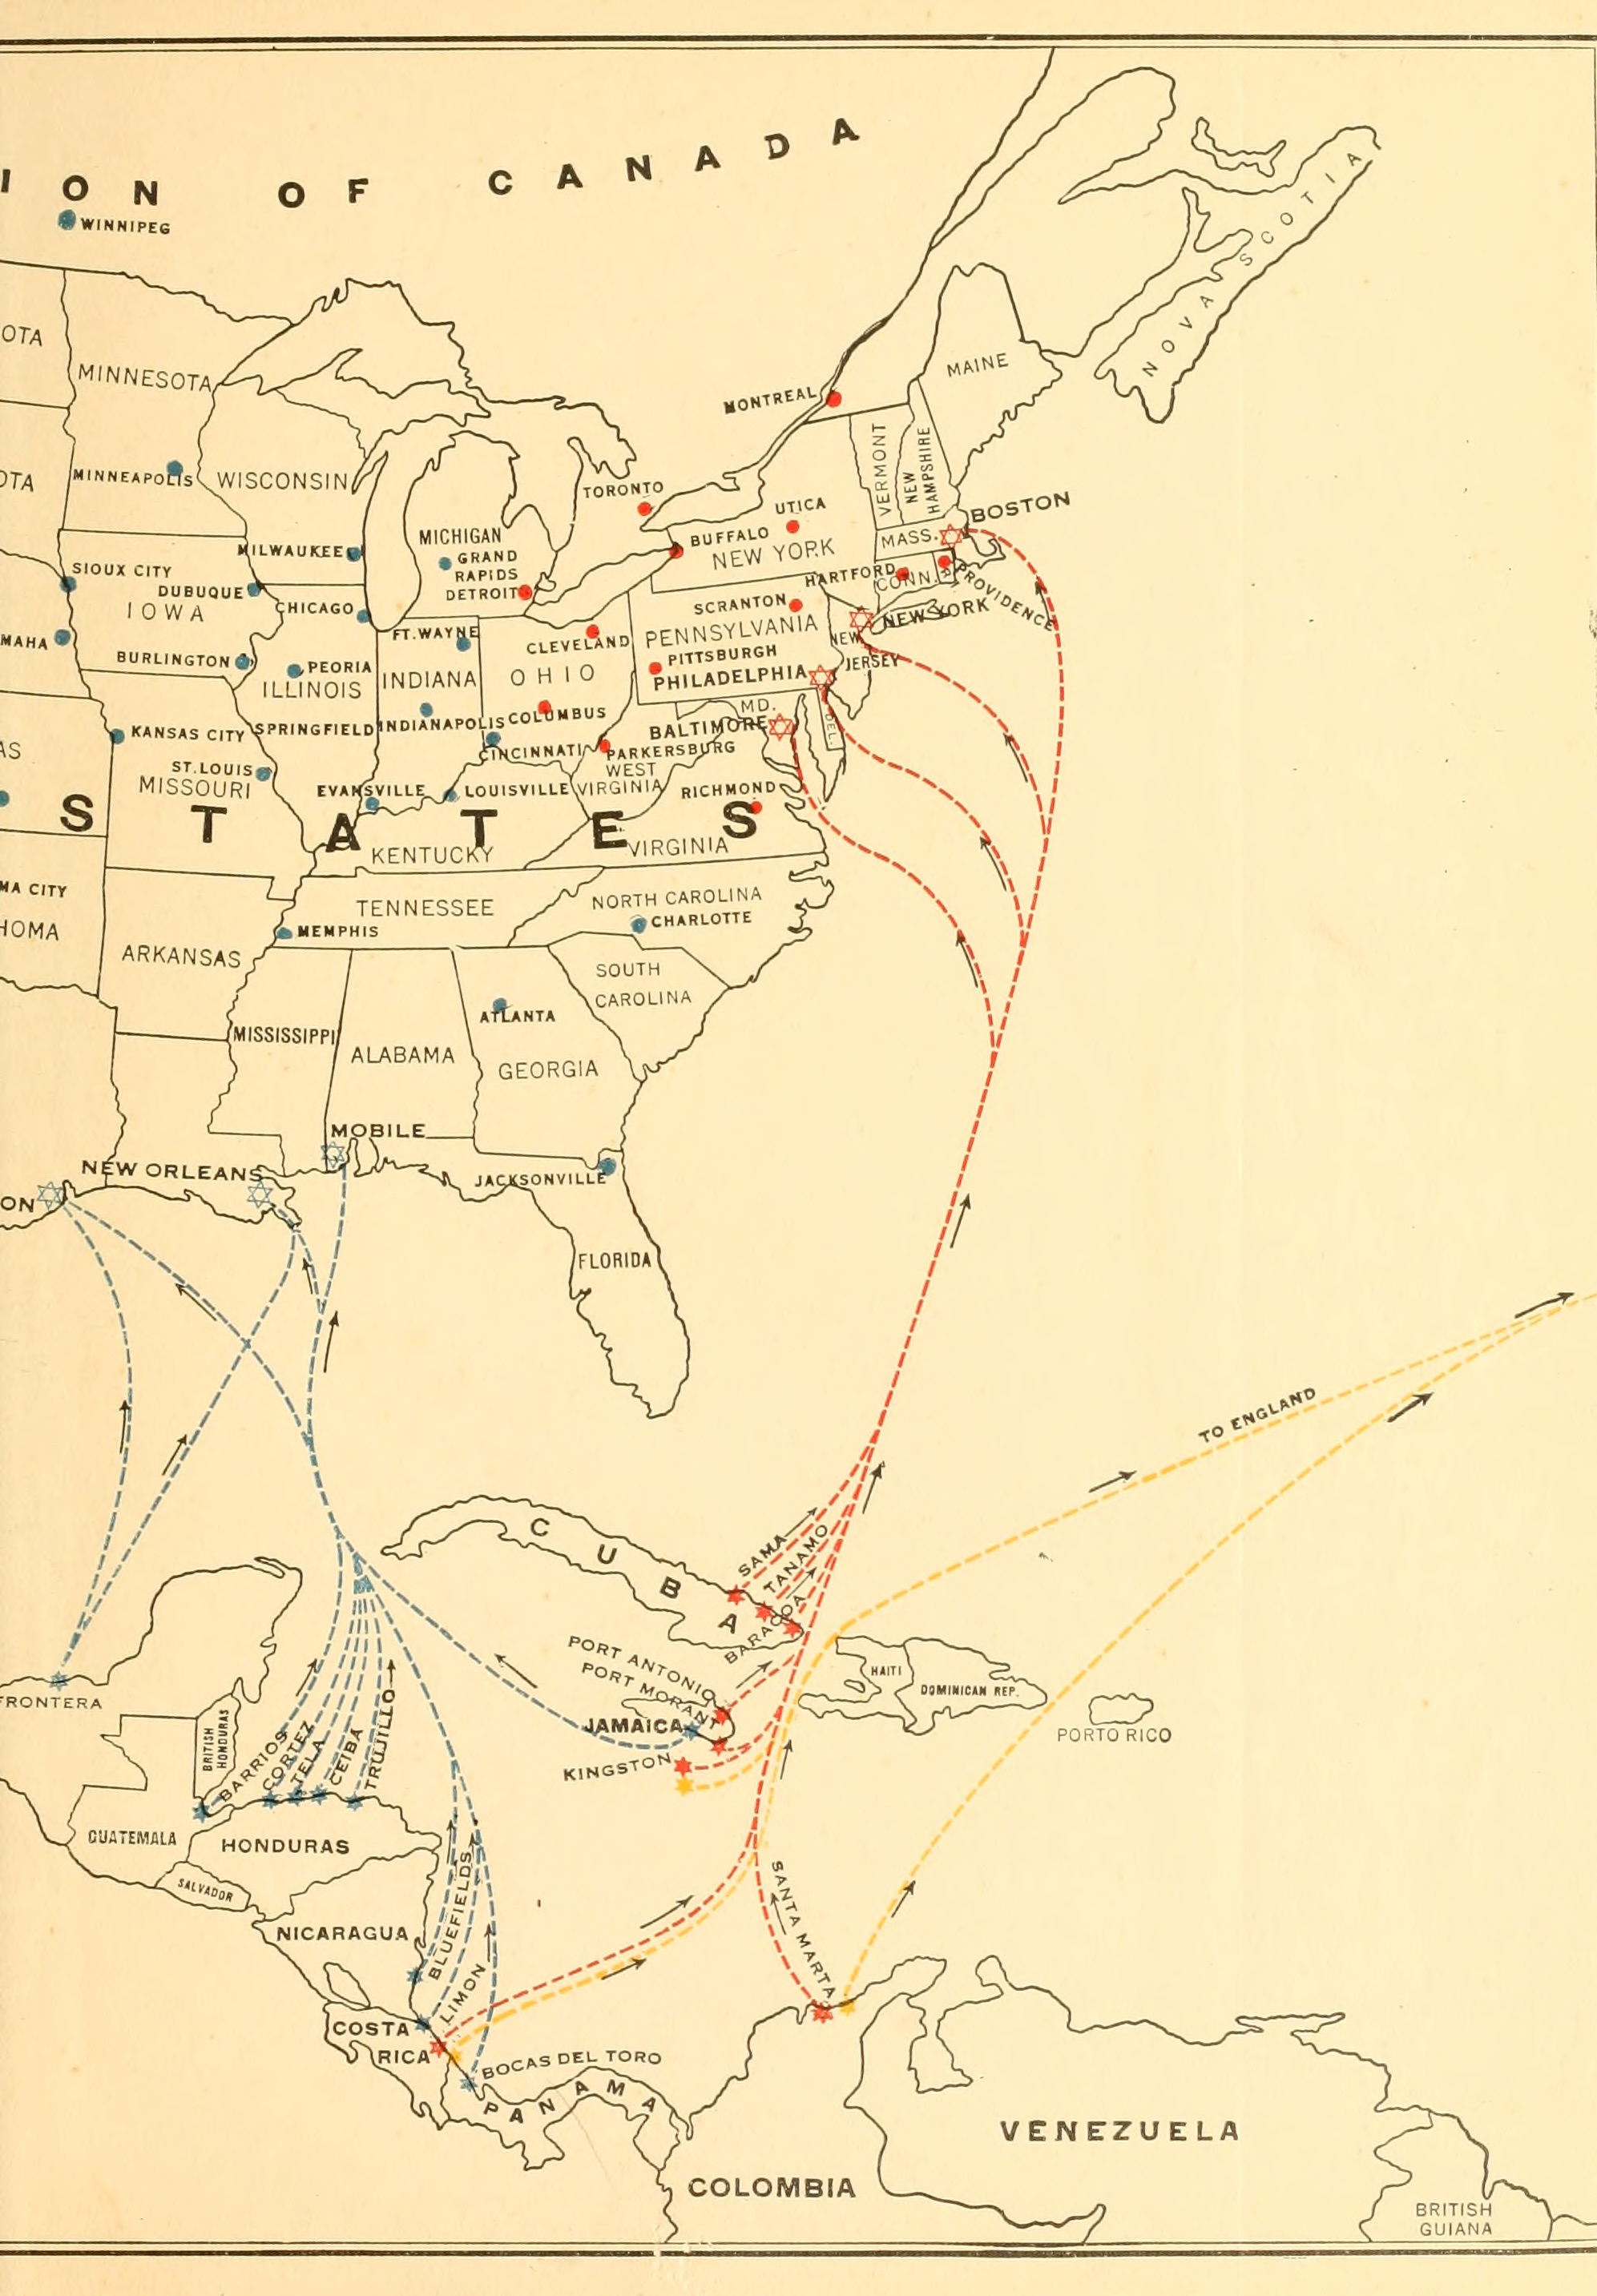 """Banana Shipping Routes,"" from the back cover of United Fruit Company's The Story of the Banana (Boston, MA: United Fruit Company, 1921)."